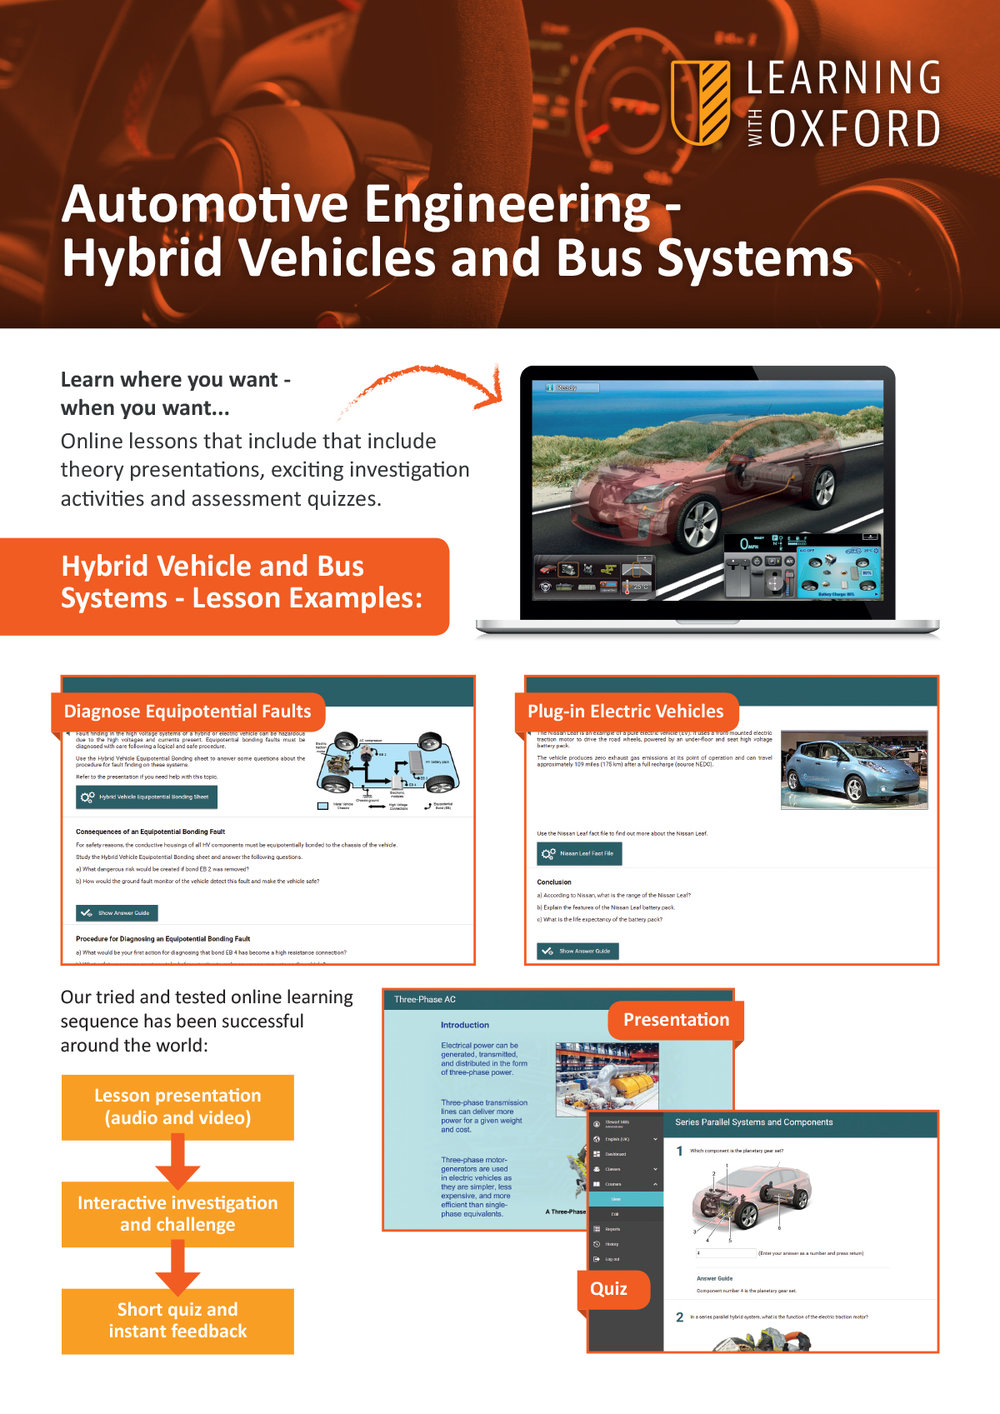 What lesson topics are covered with the full licence? - Take a look at our Hybrid Vehicles and Bus Systems InfoSheet to see the topic listing.